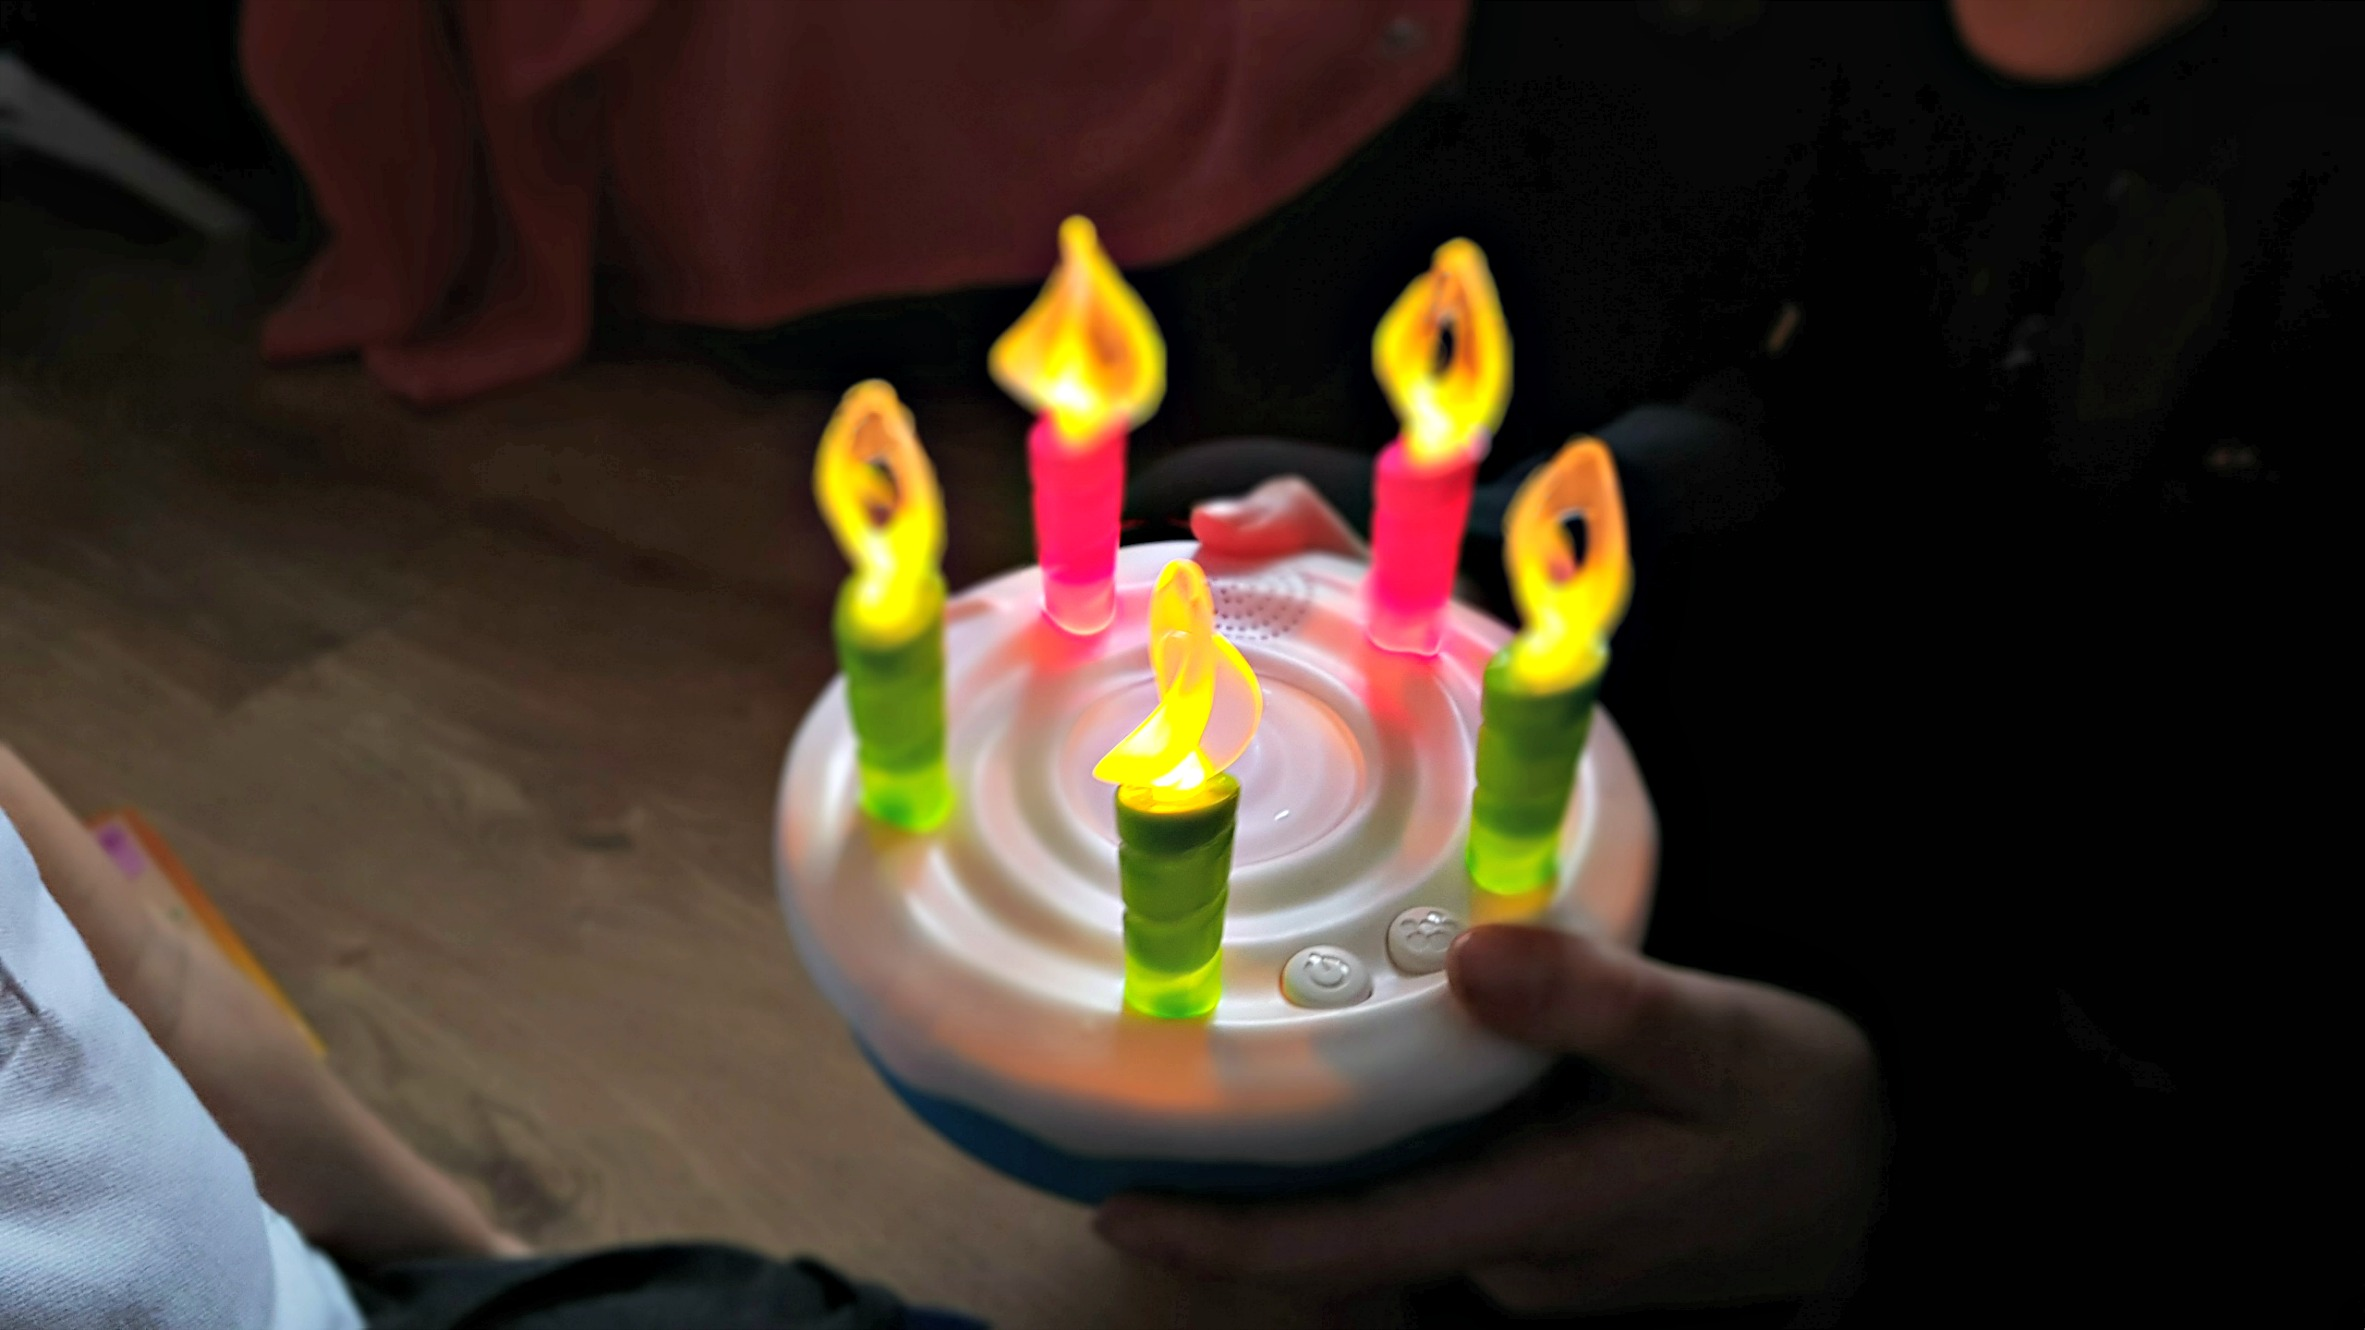 lit up candles on the hasbro birthday blowout game